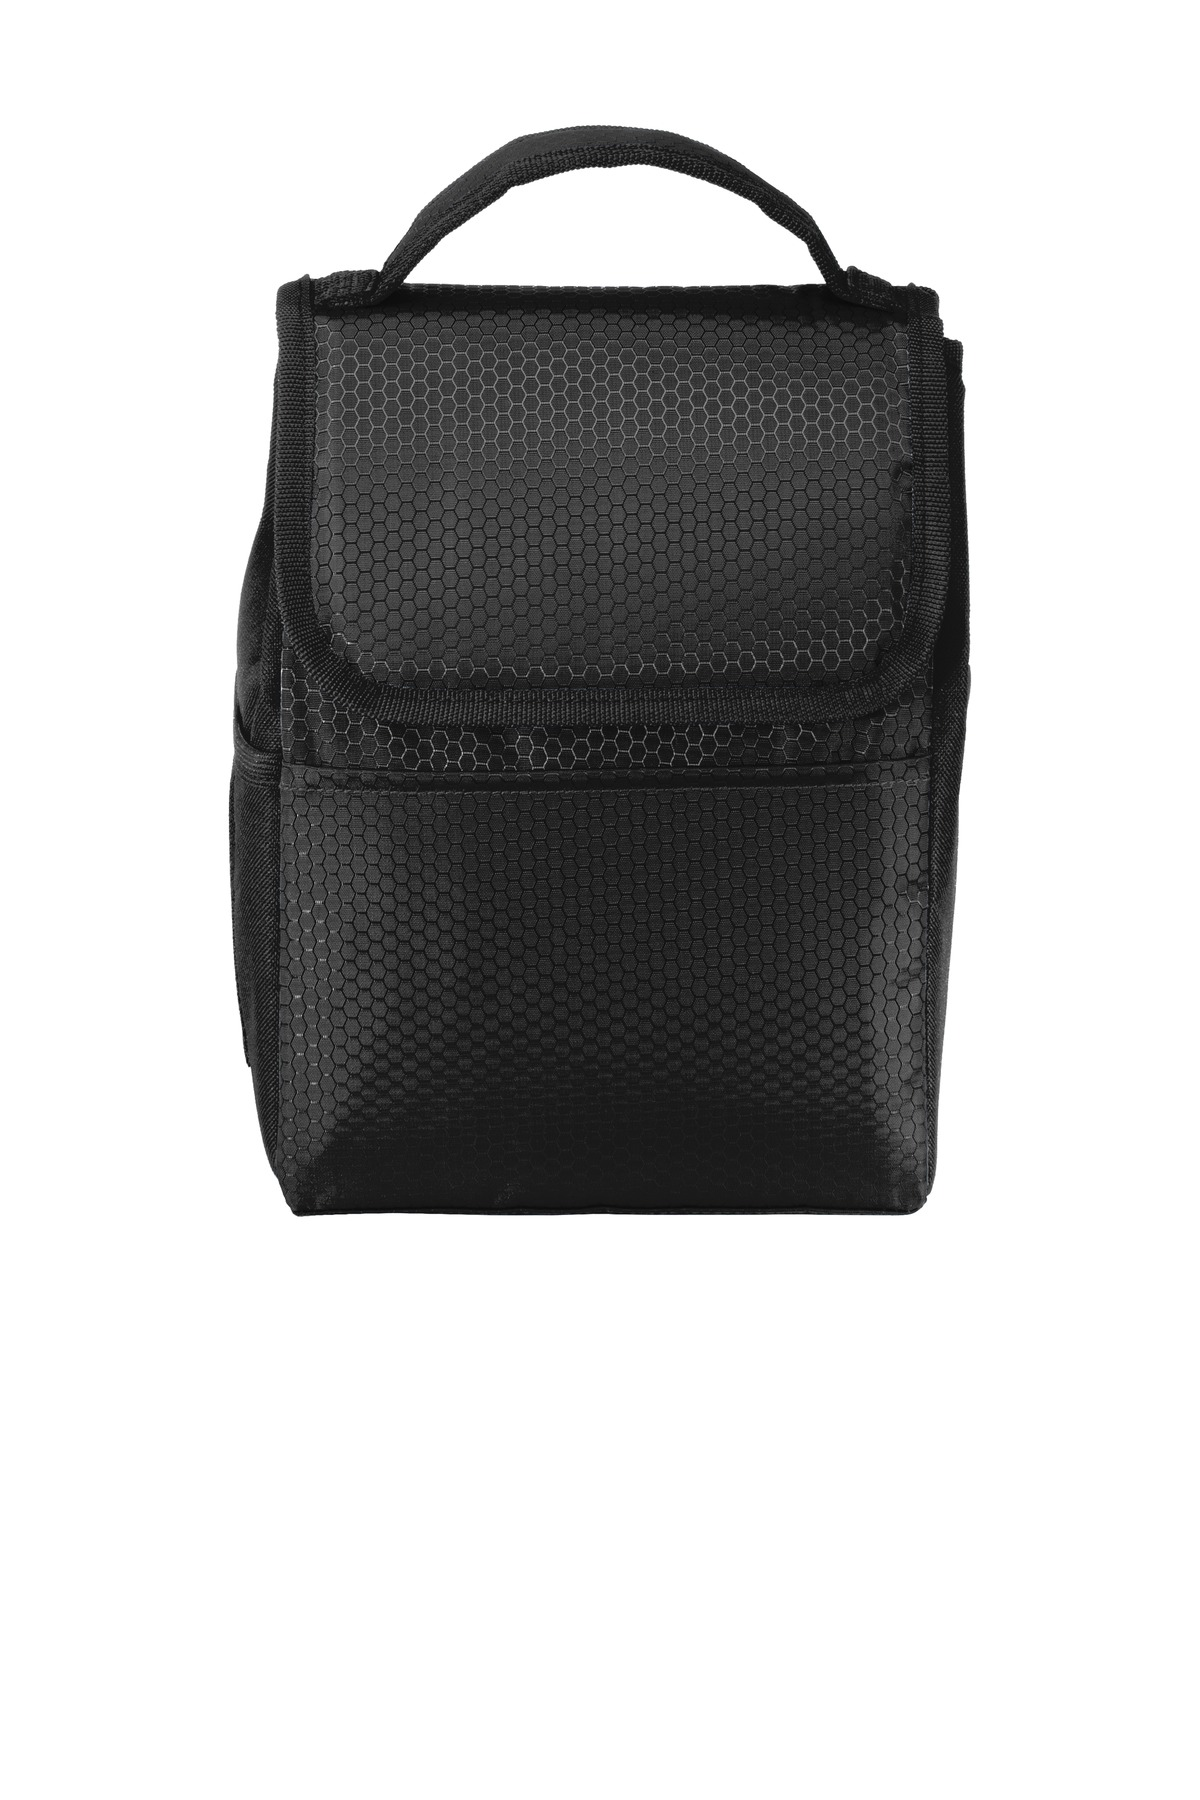 Port Authority ®  Lunch Bag Cooler. BG500 - Black/ Black